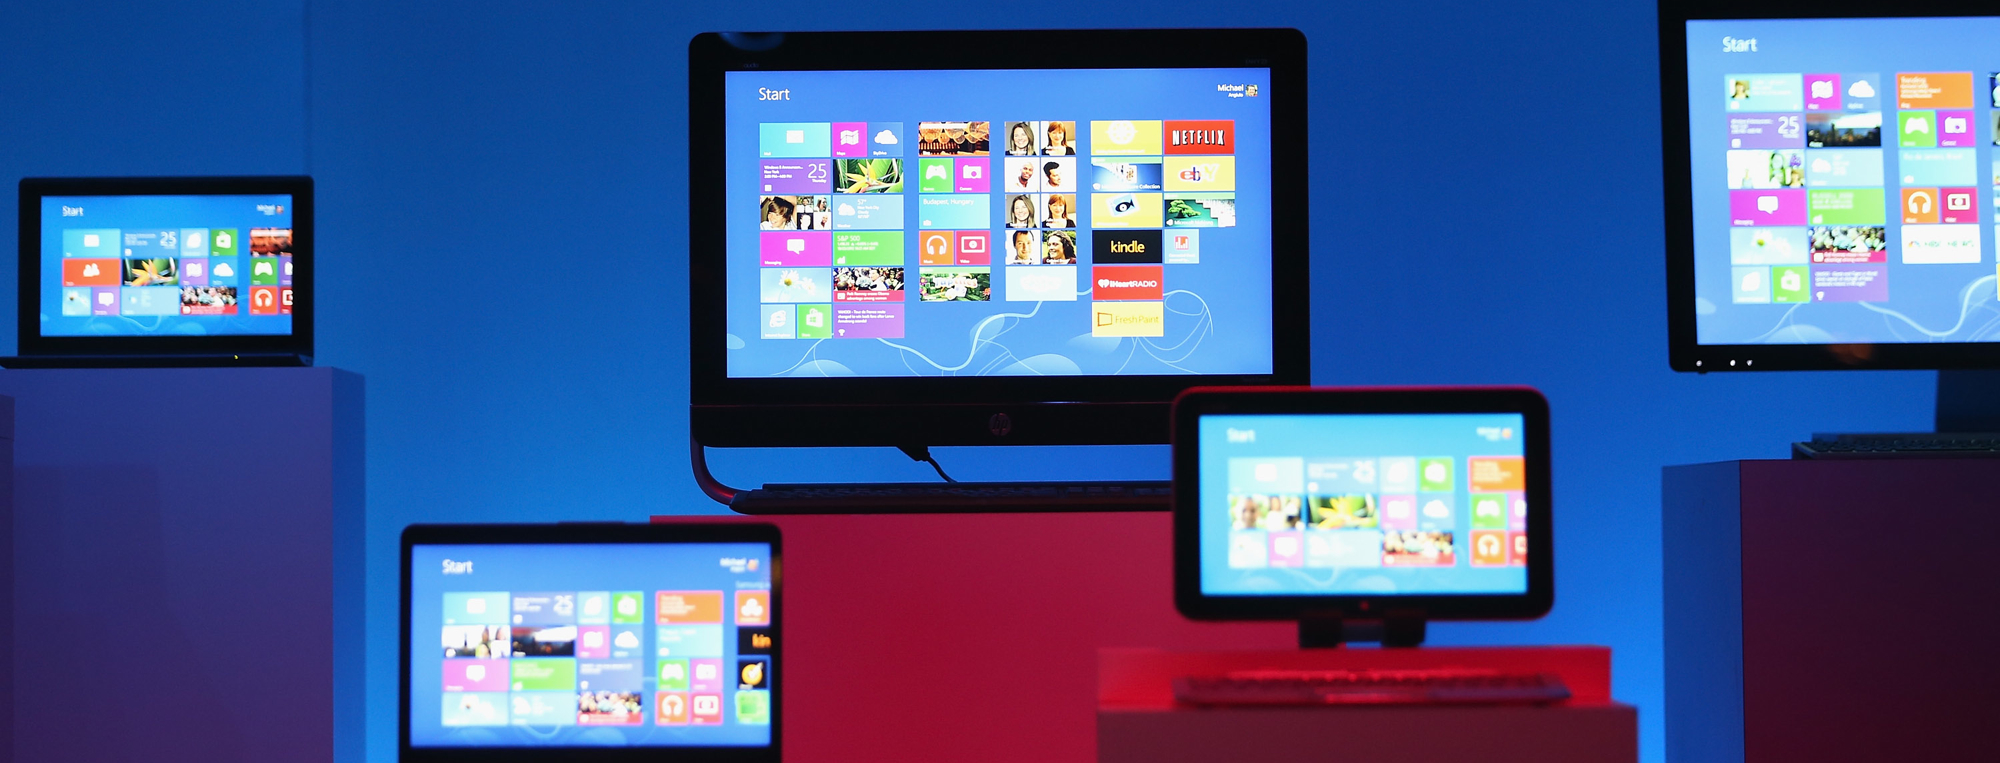 Windows 8 and Windows 8.1 pass 10% market share, Windows 7 still gains more, and Windows XP falls below 30%